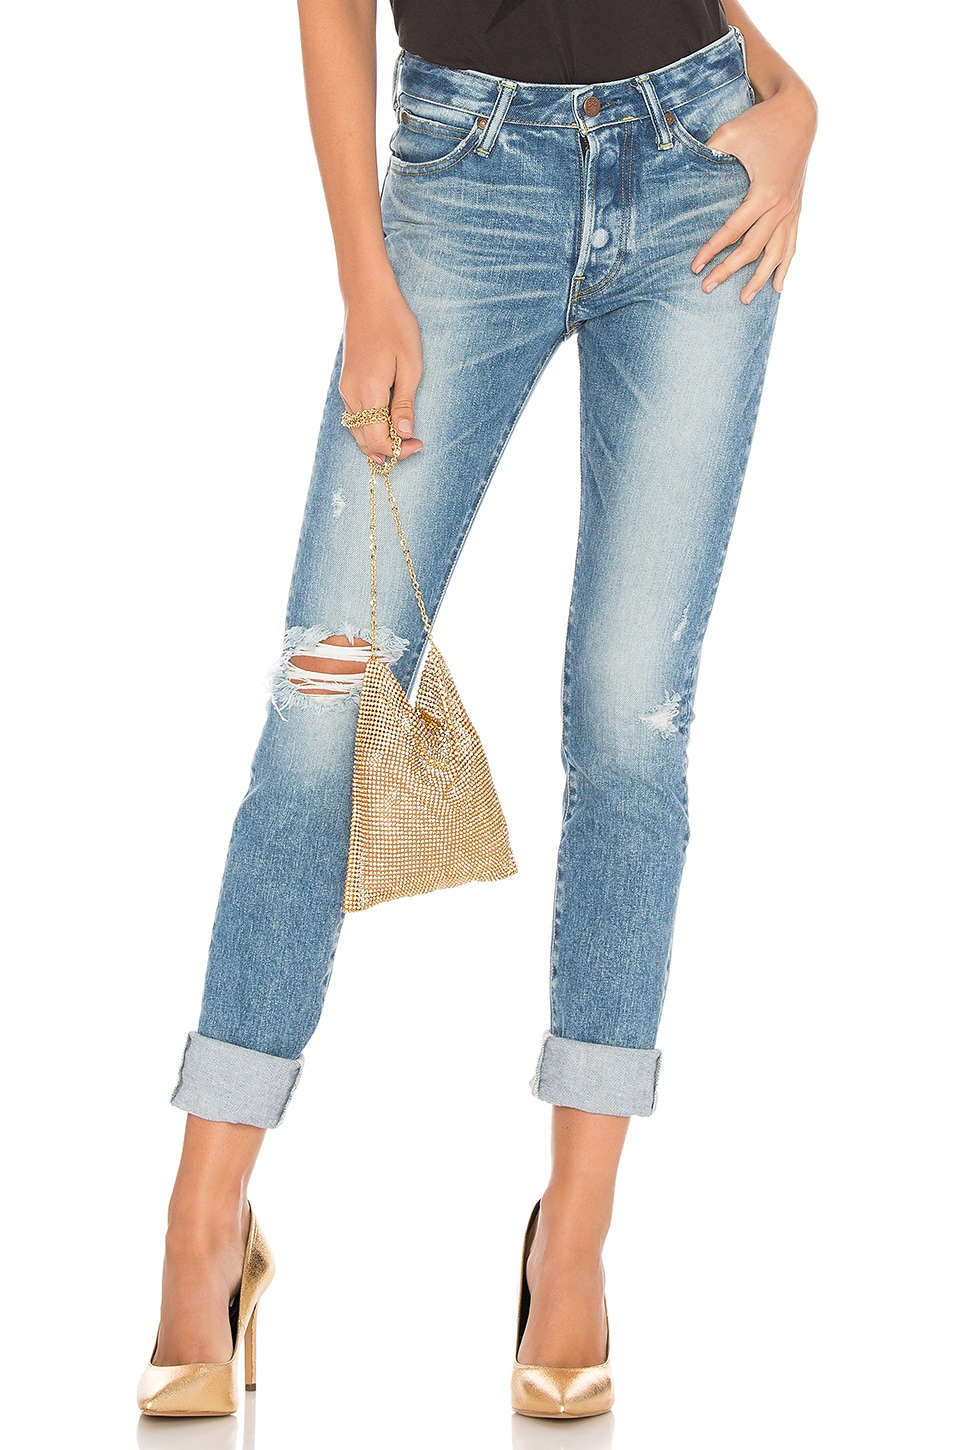 Brappers Denim Tight Straight Hard Distressed Destroyed in Light Blue